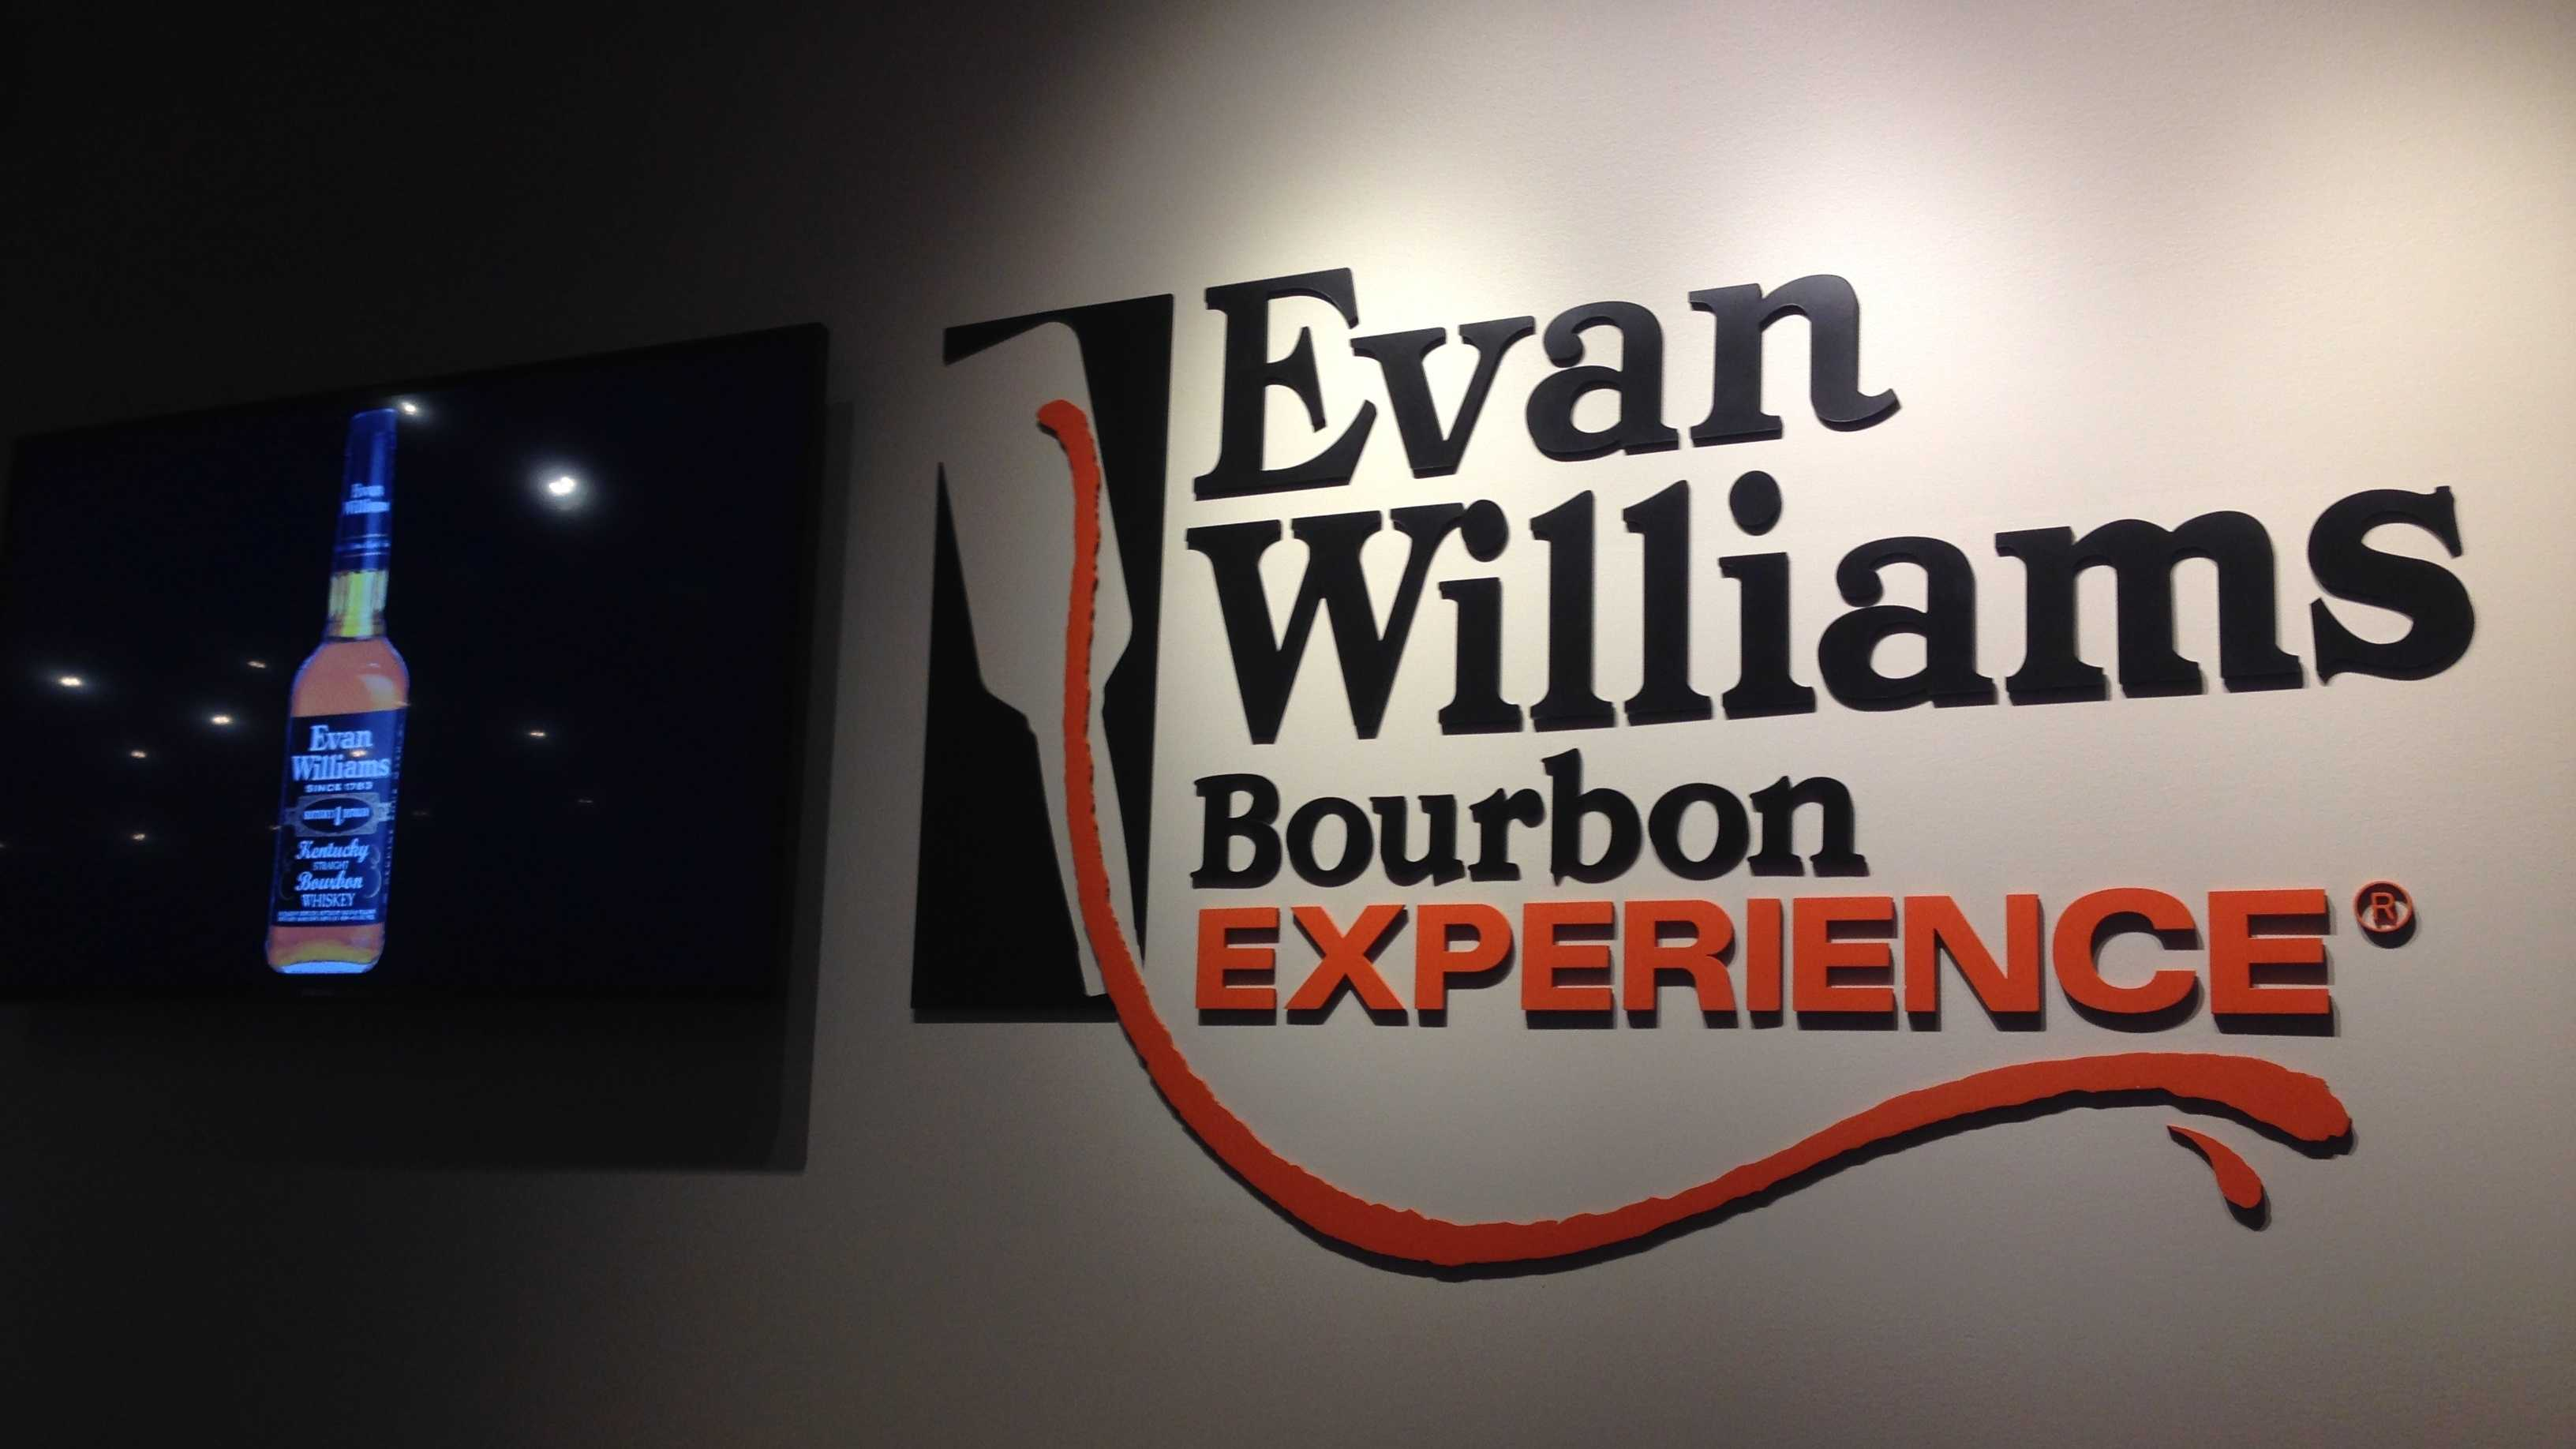 Evan Williams (4).JPG